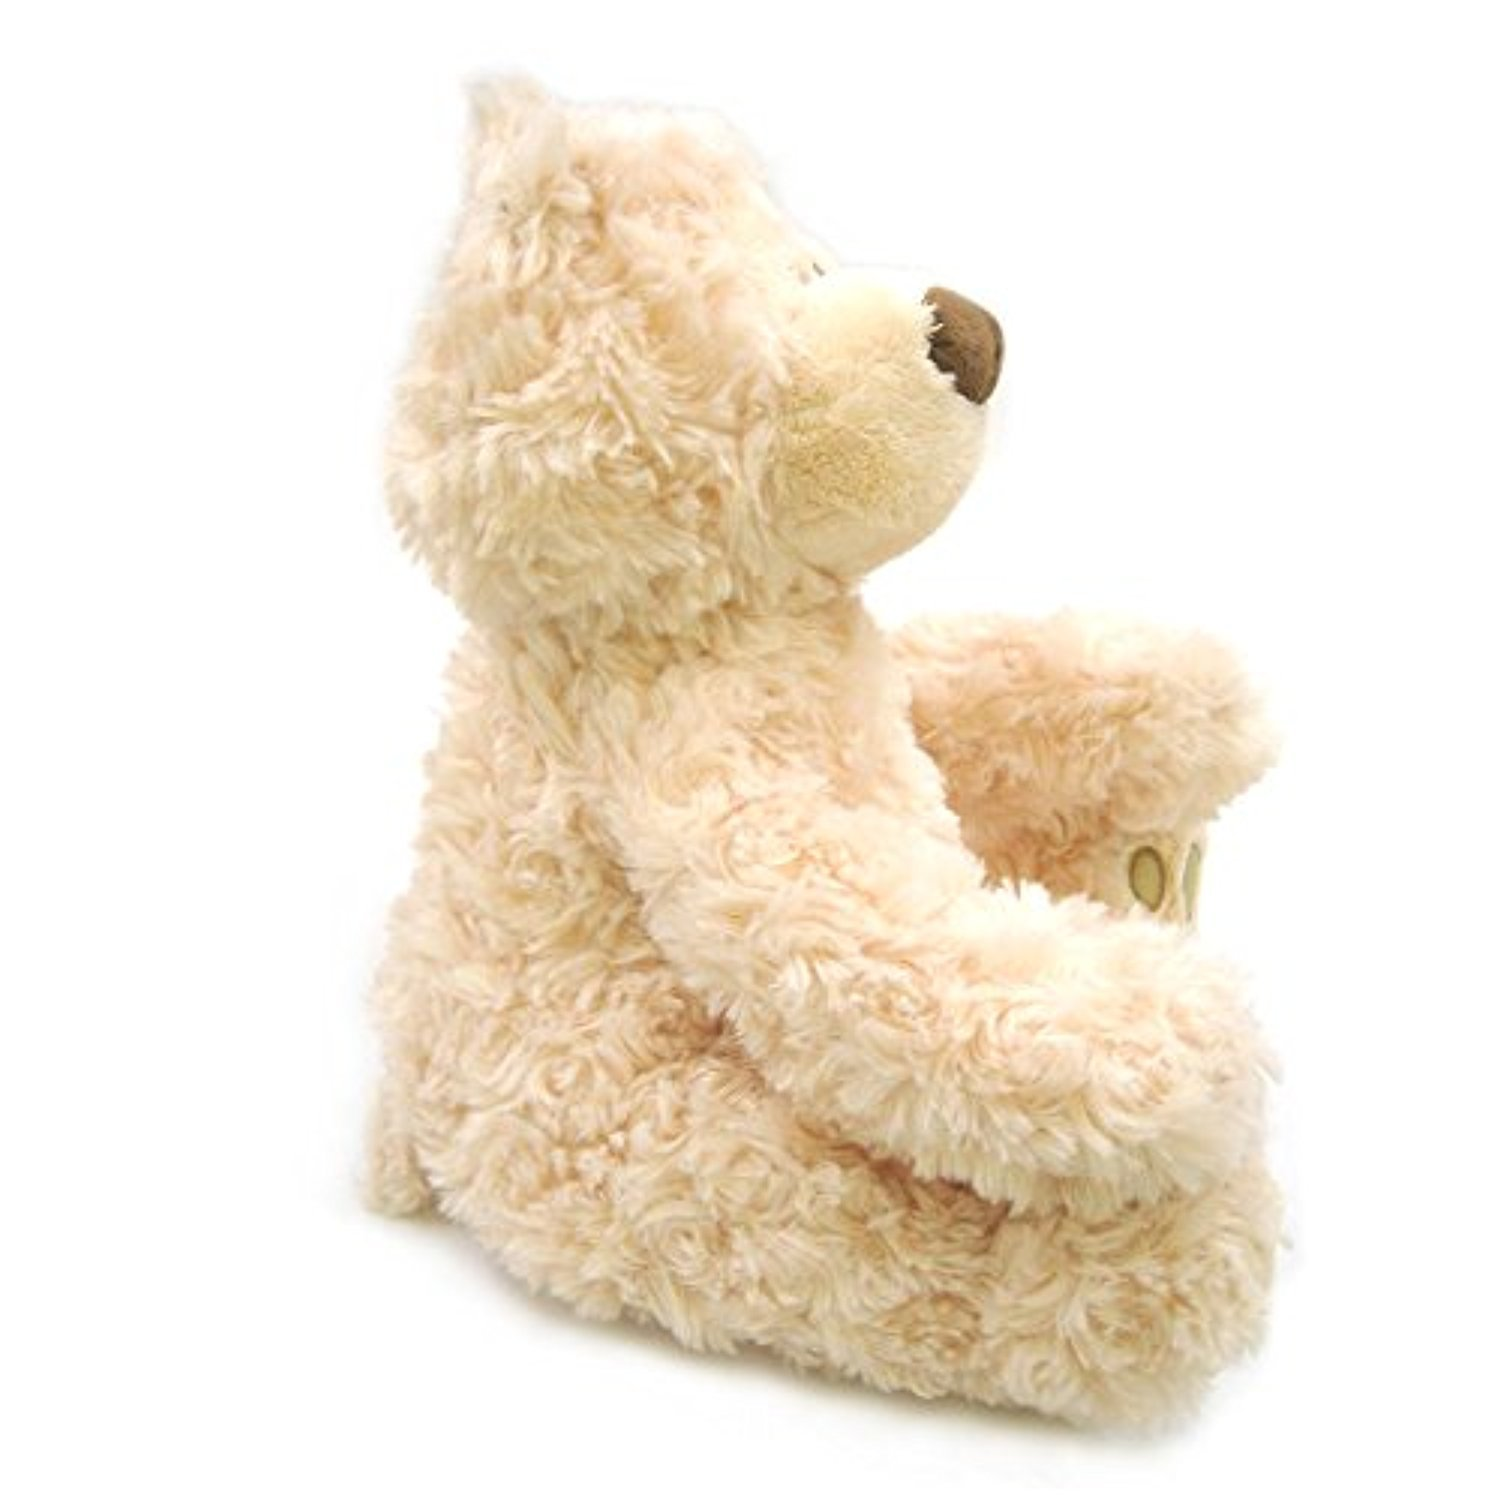 ◎送料込み◎ テディーベア Gund Philbin Teddy Bear Stuffed